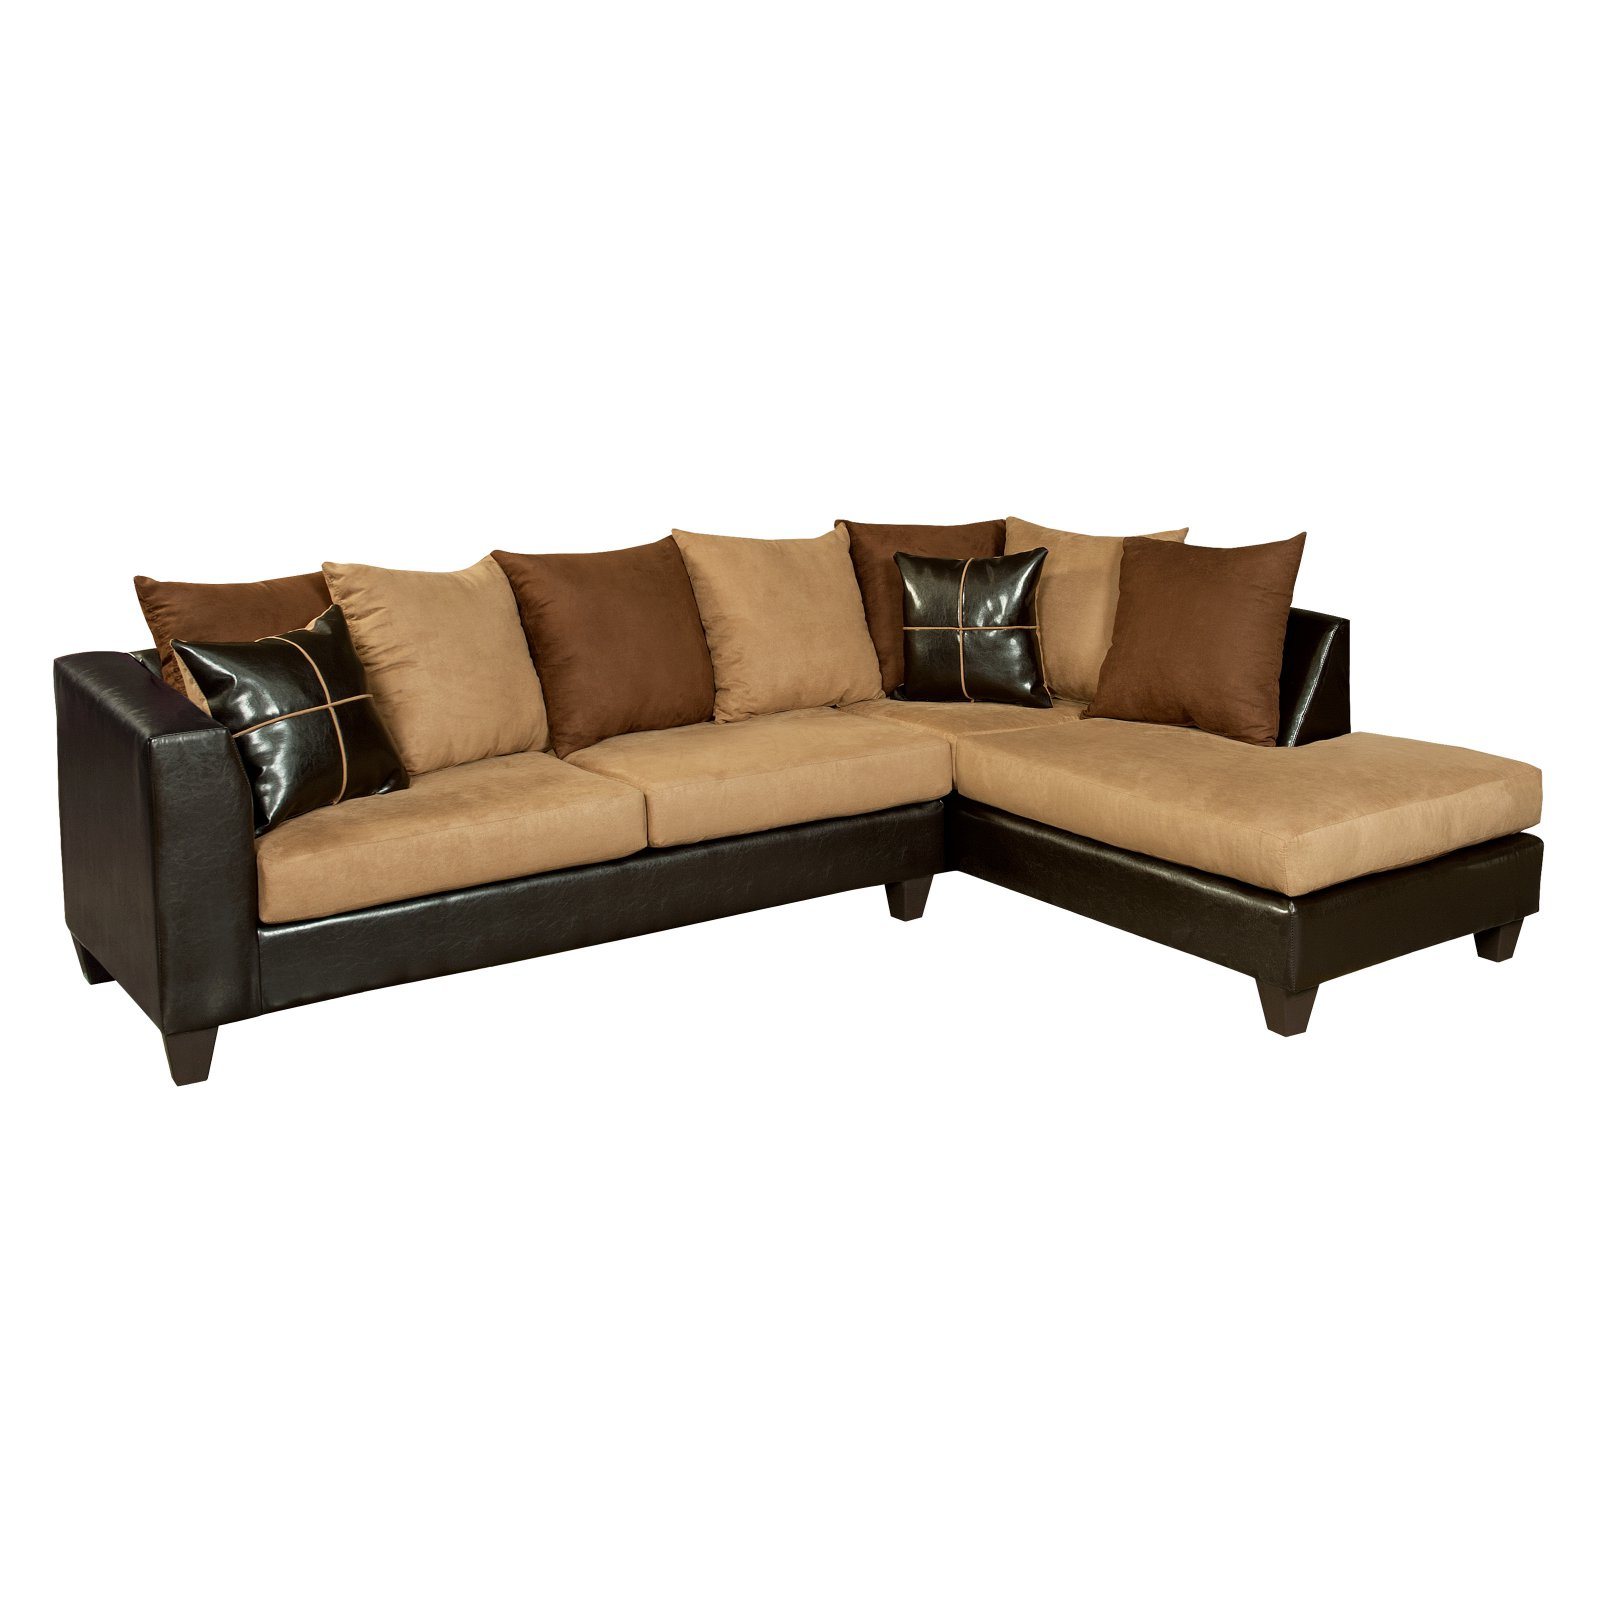 Flash Furniture Riverstone Sierra Sectional Sofa